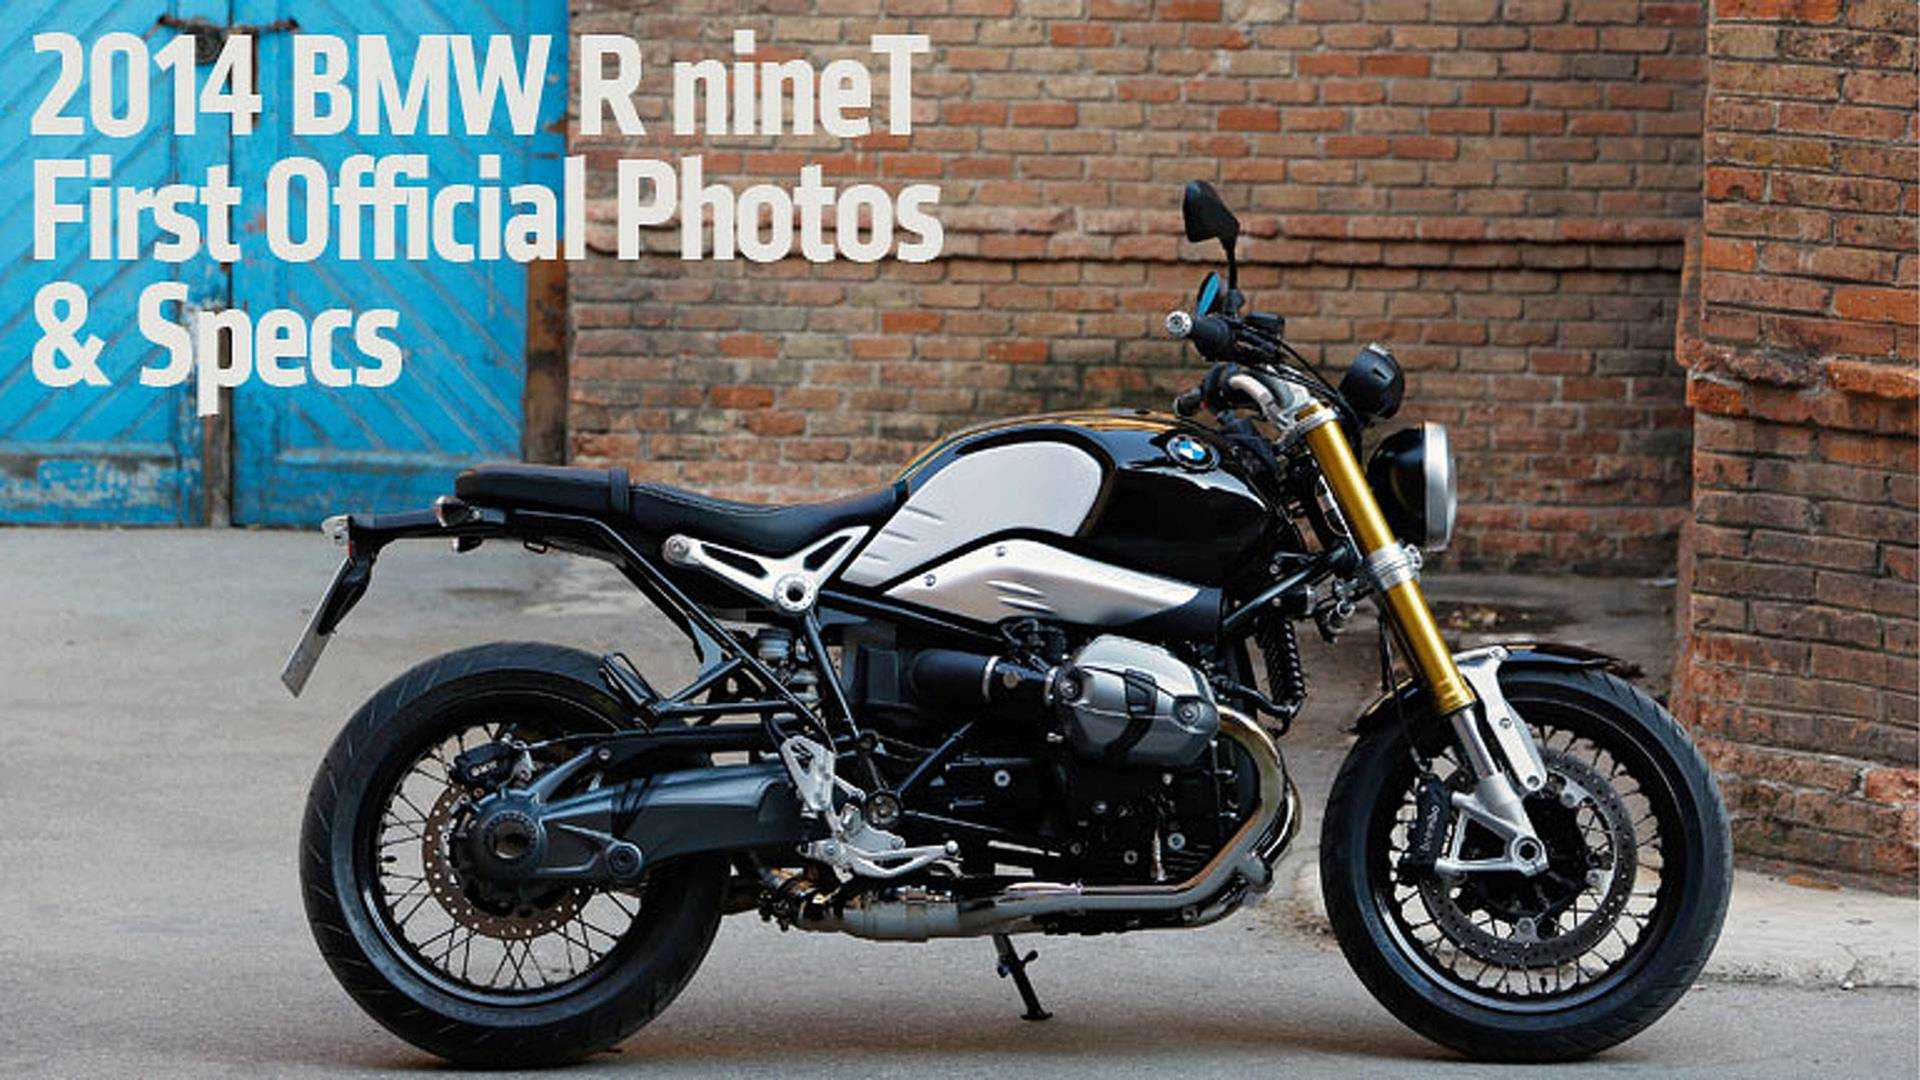 Awe Inspiring 2014 Bmw R Ninet First Official Photos And Specs Evergreenethics Interior Chair Design Evergreenethicsorg